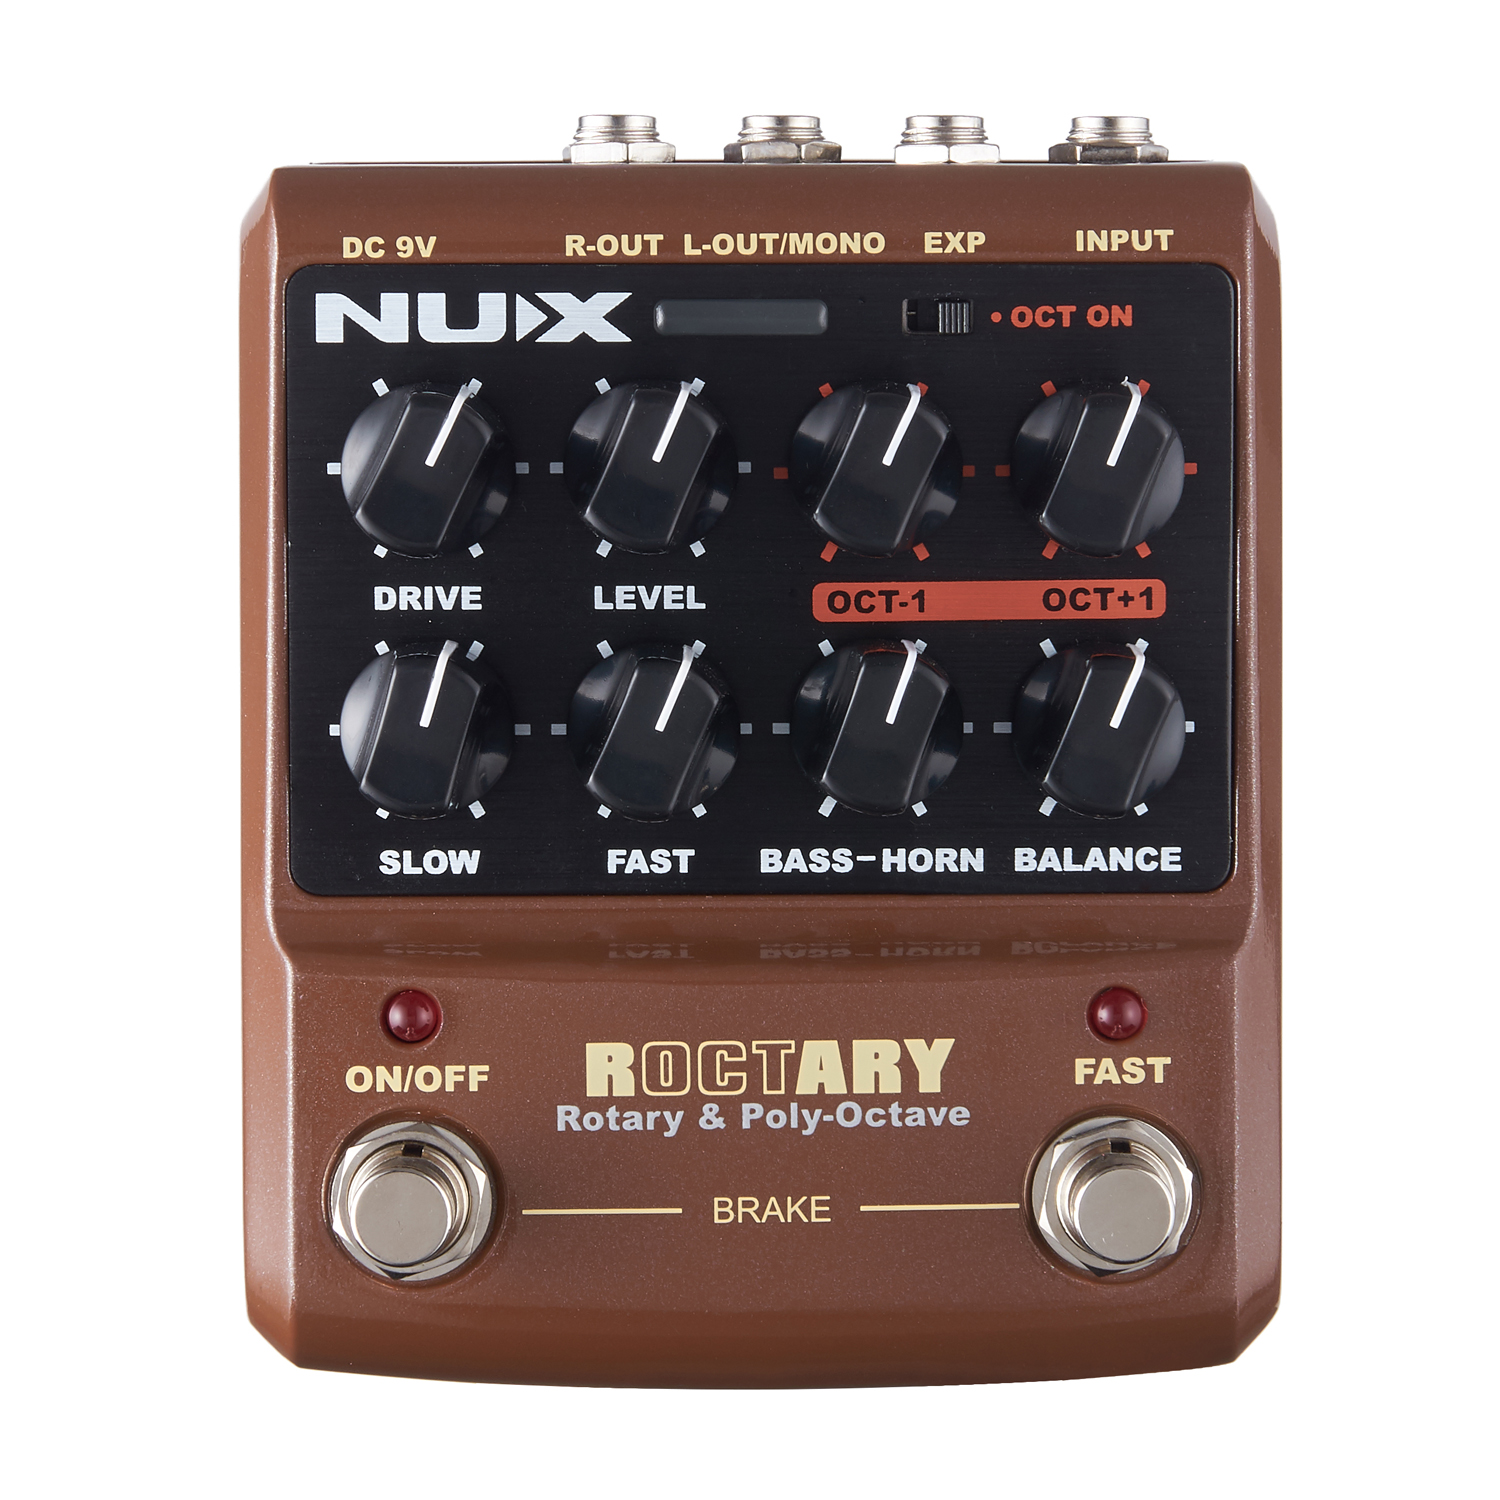 NUX Roctary Force Octave Rotary Guitar Effect Pedal Cabin Simulator nux simulator polyphonic roctary force octave stomp boxes electric guitar effect pedal fet buttered tsac true bypass